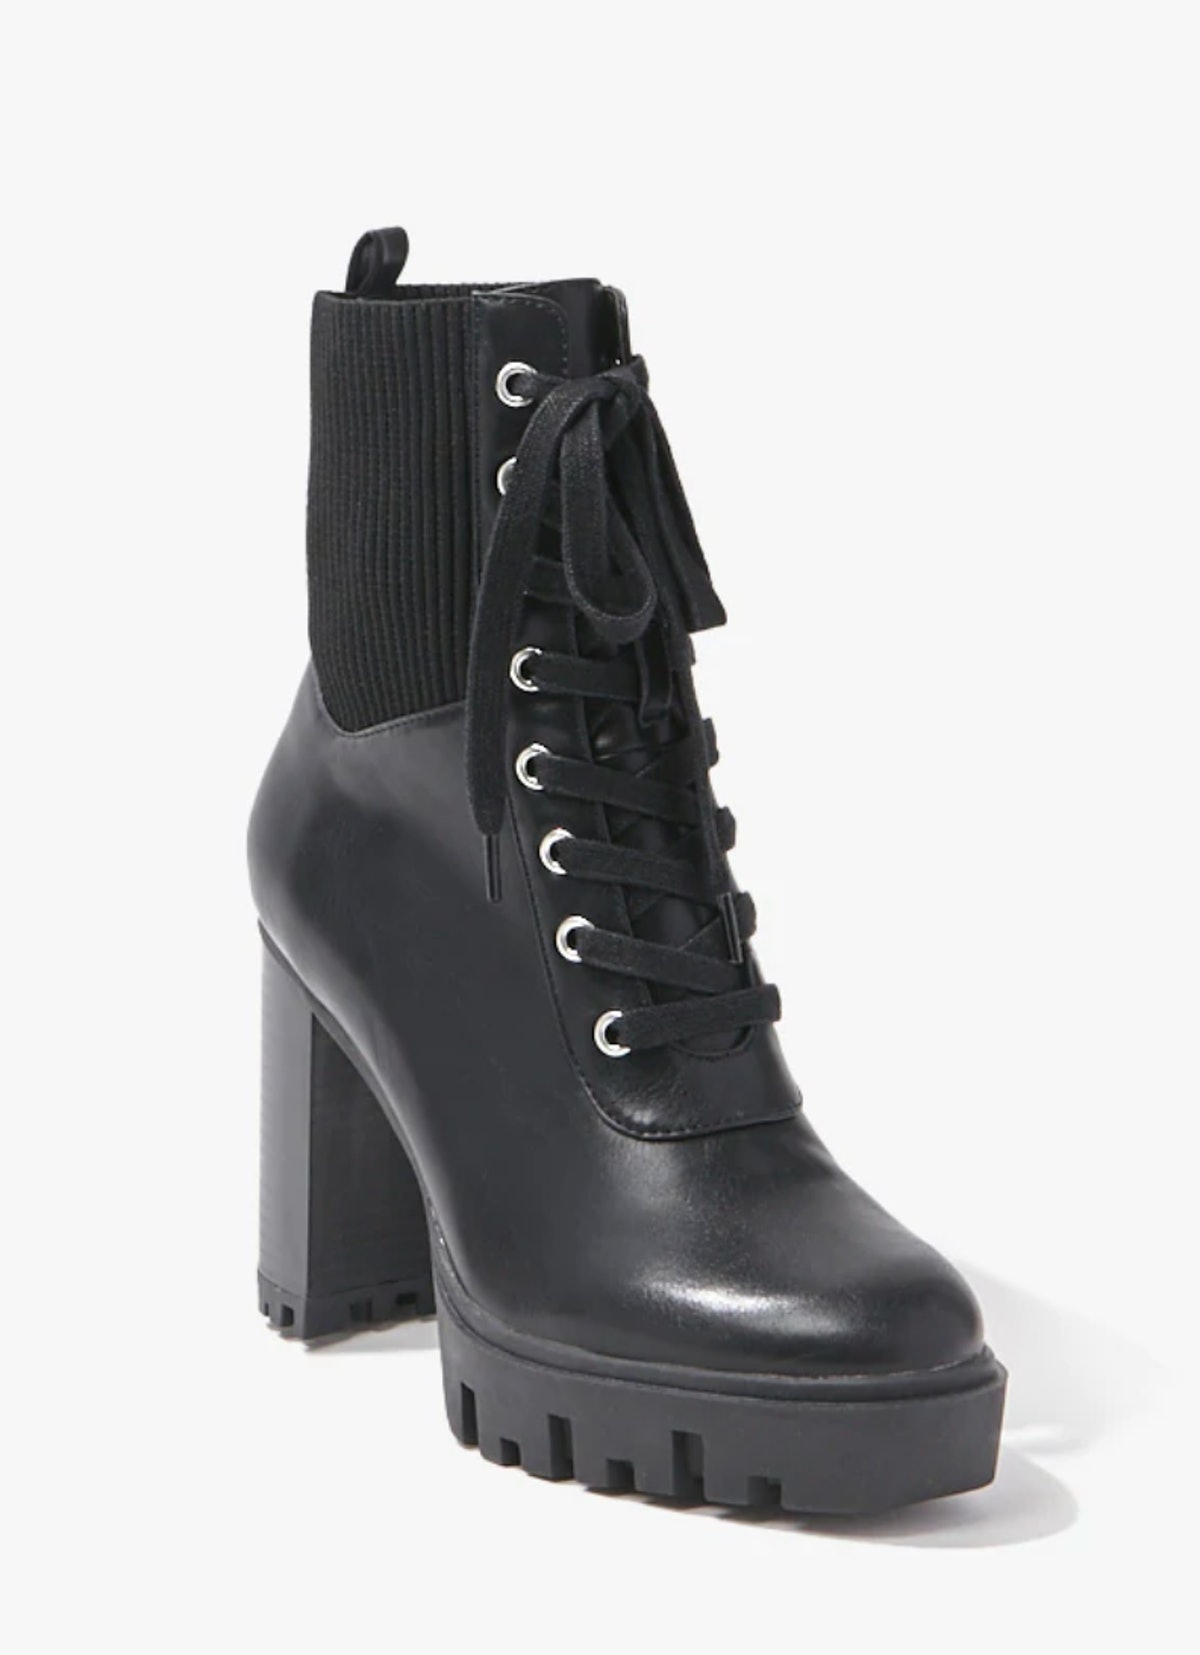 Combo Ankle Boots